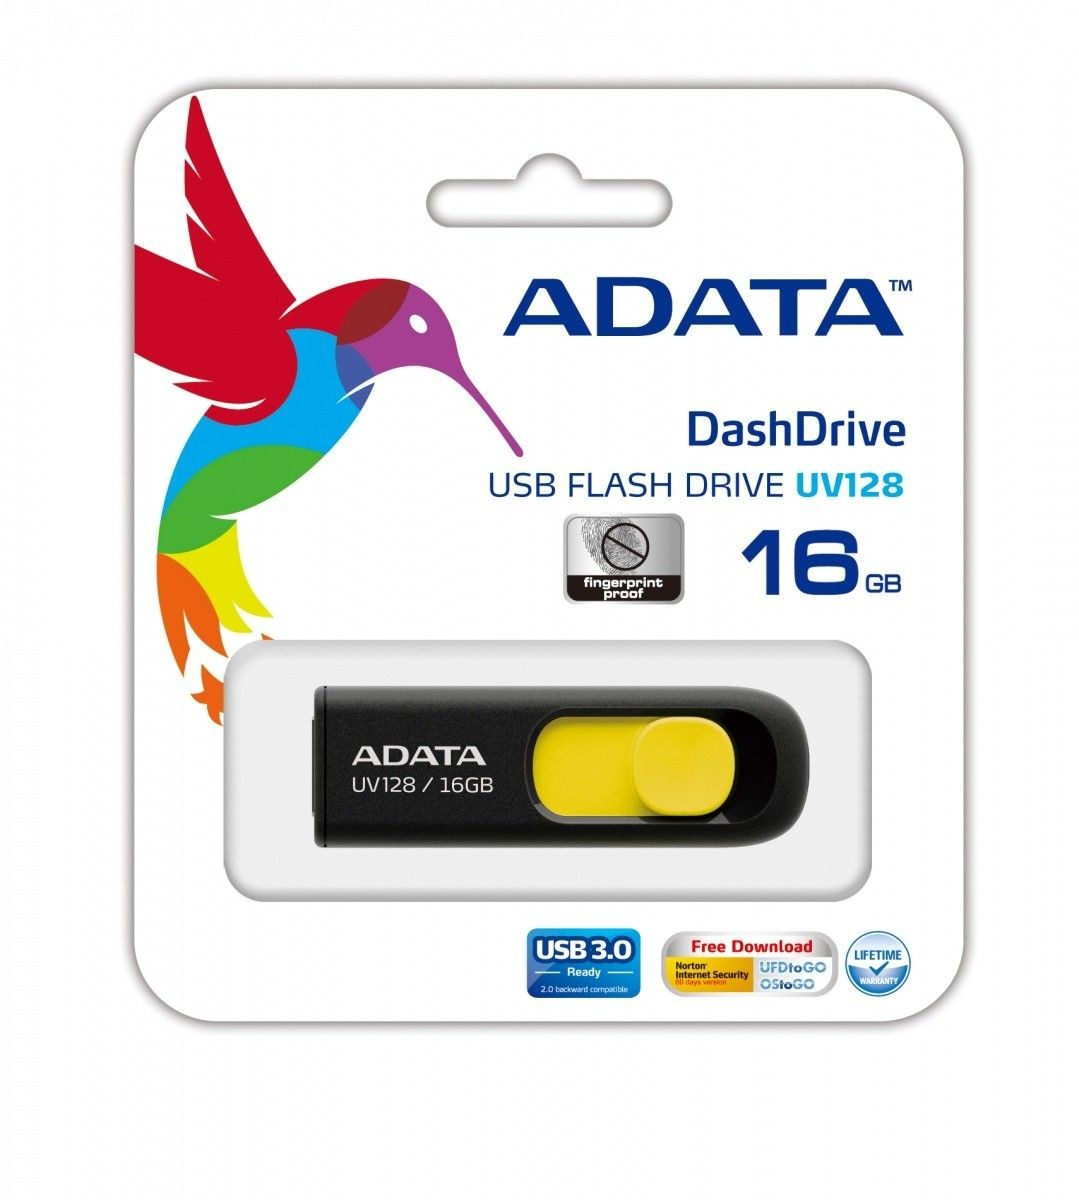 A-Data Adata pamięć USB DashDrive UV128 16GB USB 3.0 Czarny+Yellow